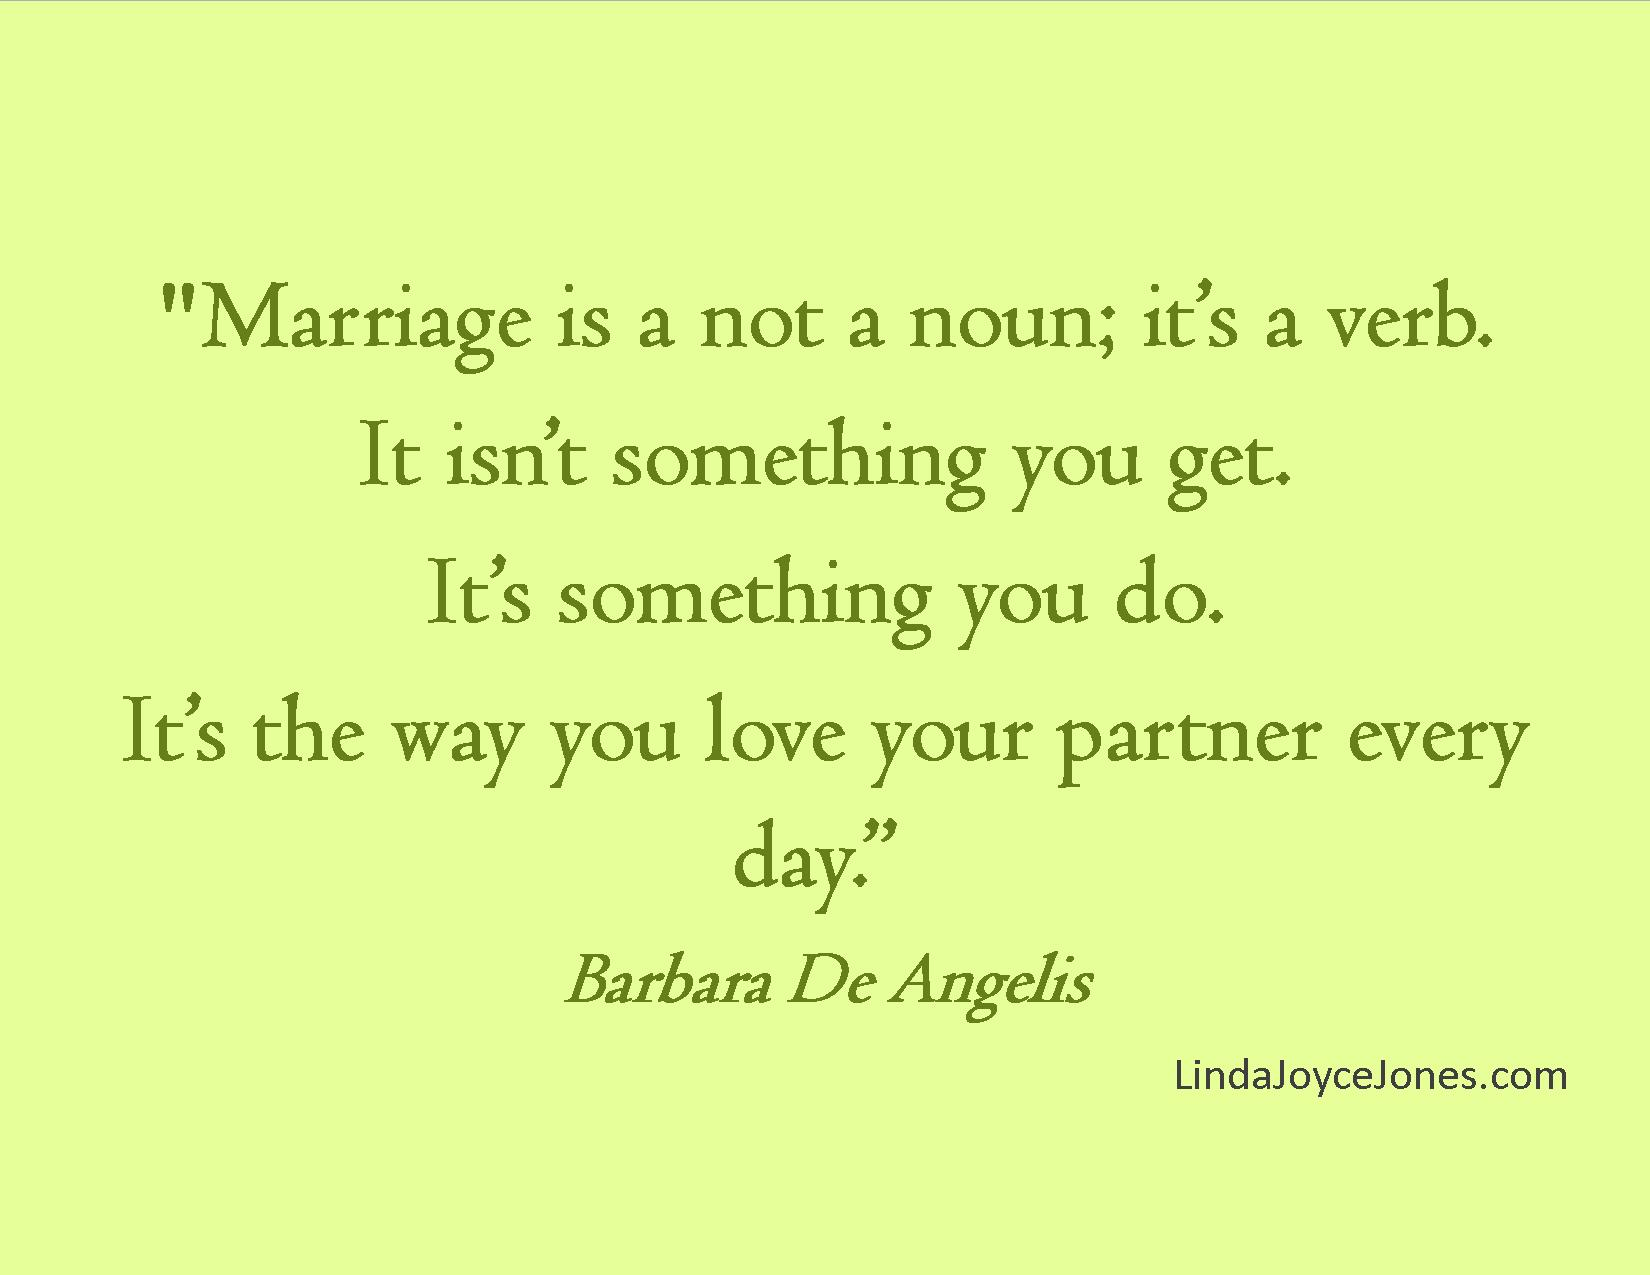 Wedding Quotes Love Quotes About Love Tagalog Tumblr And Life For Him Cover Photo